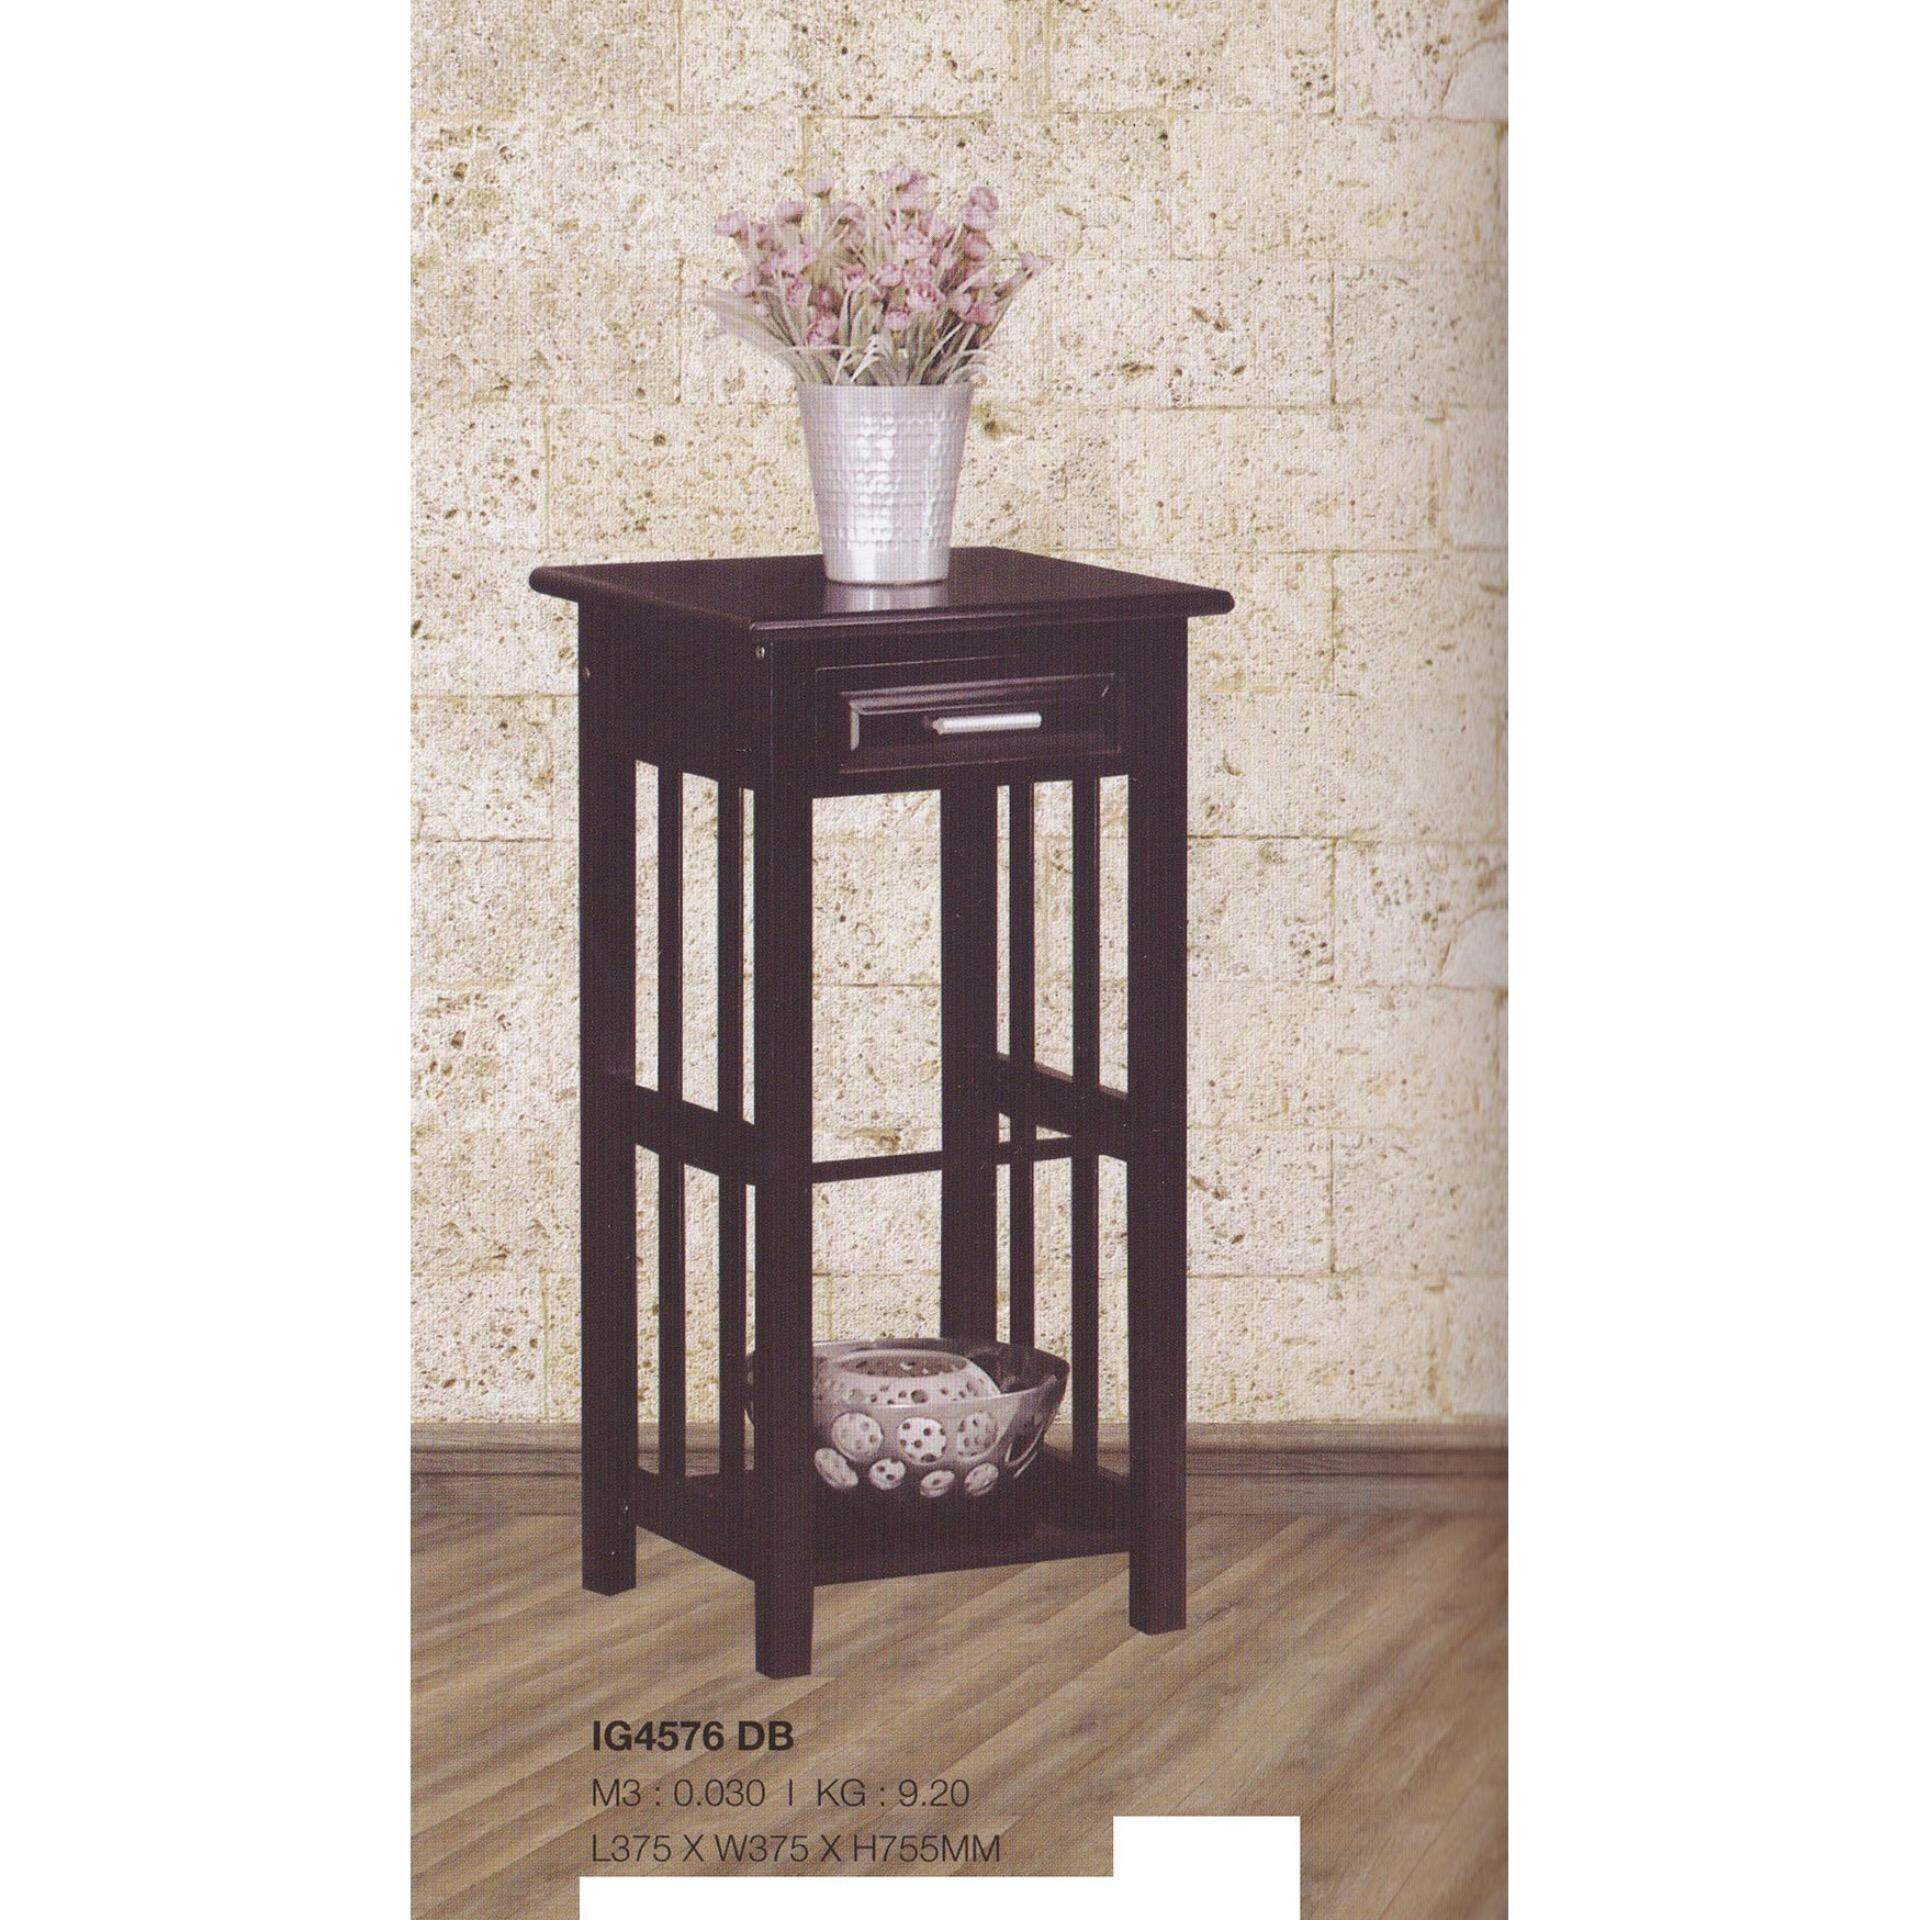 Solid Wood Side Table (Dark Brown Color) L375MM X W375MM X H755MM